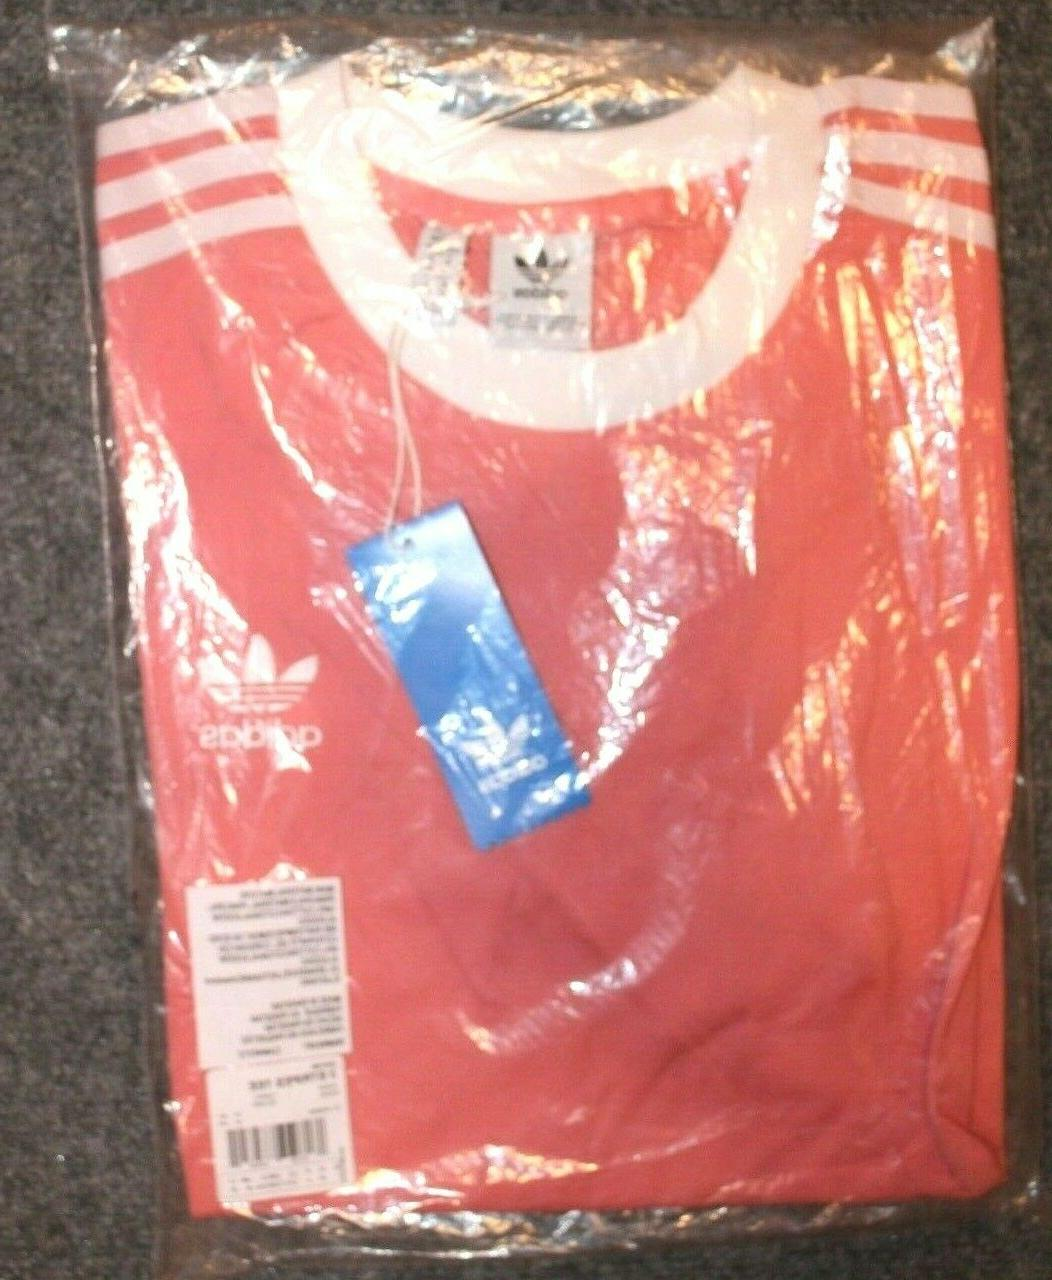 NEW ADIDAS 3 TREFOIL TEE SHIRT ~ SMALL ROSE